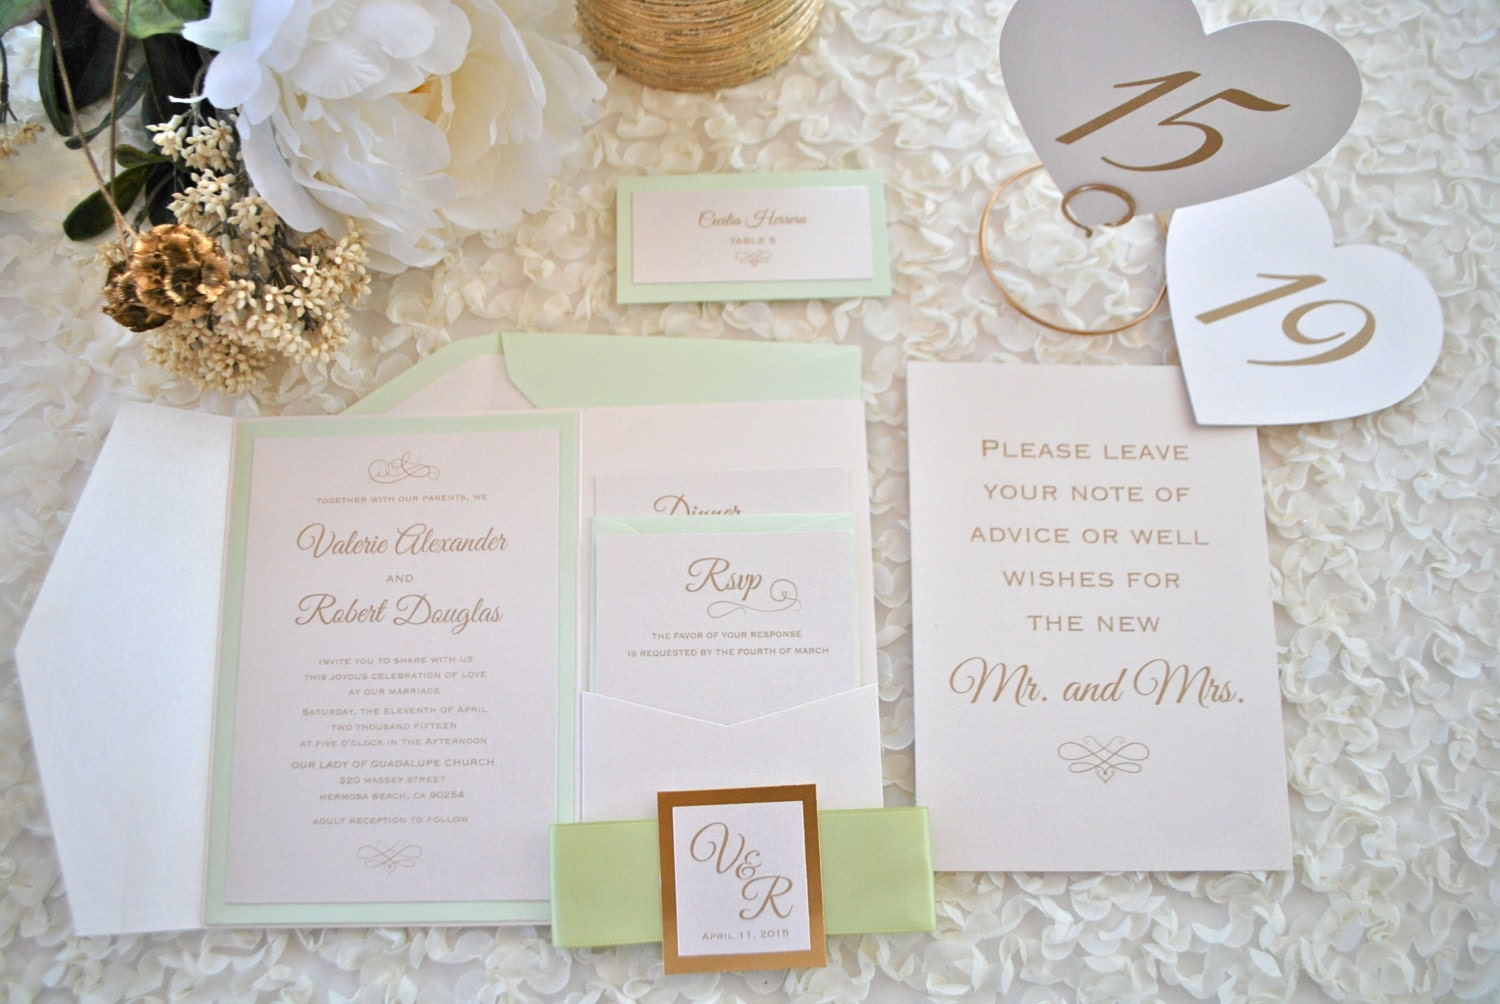 Mint Green And Gold Wedding Invitations: Classy Mint Green And Gold Foil Pocket Wedding Invitation